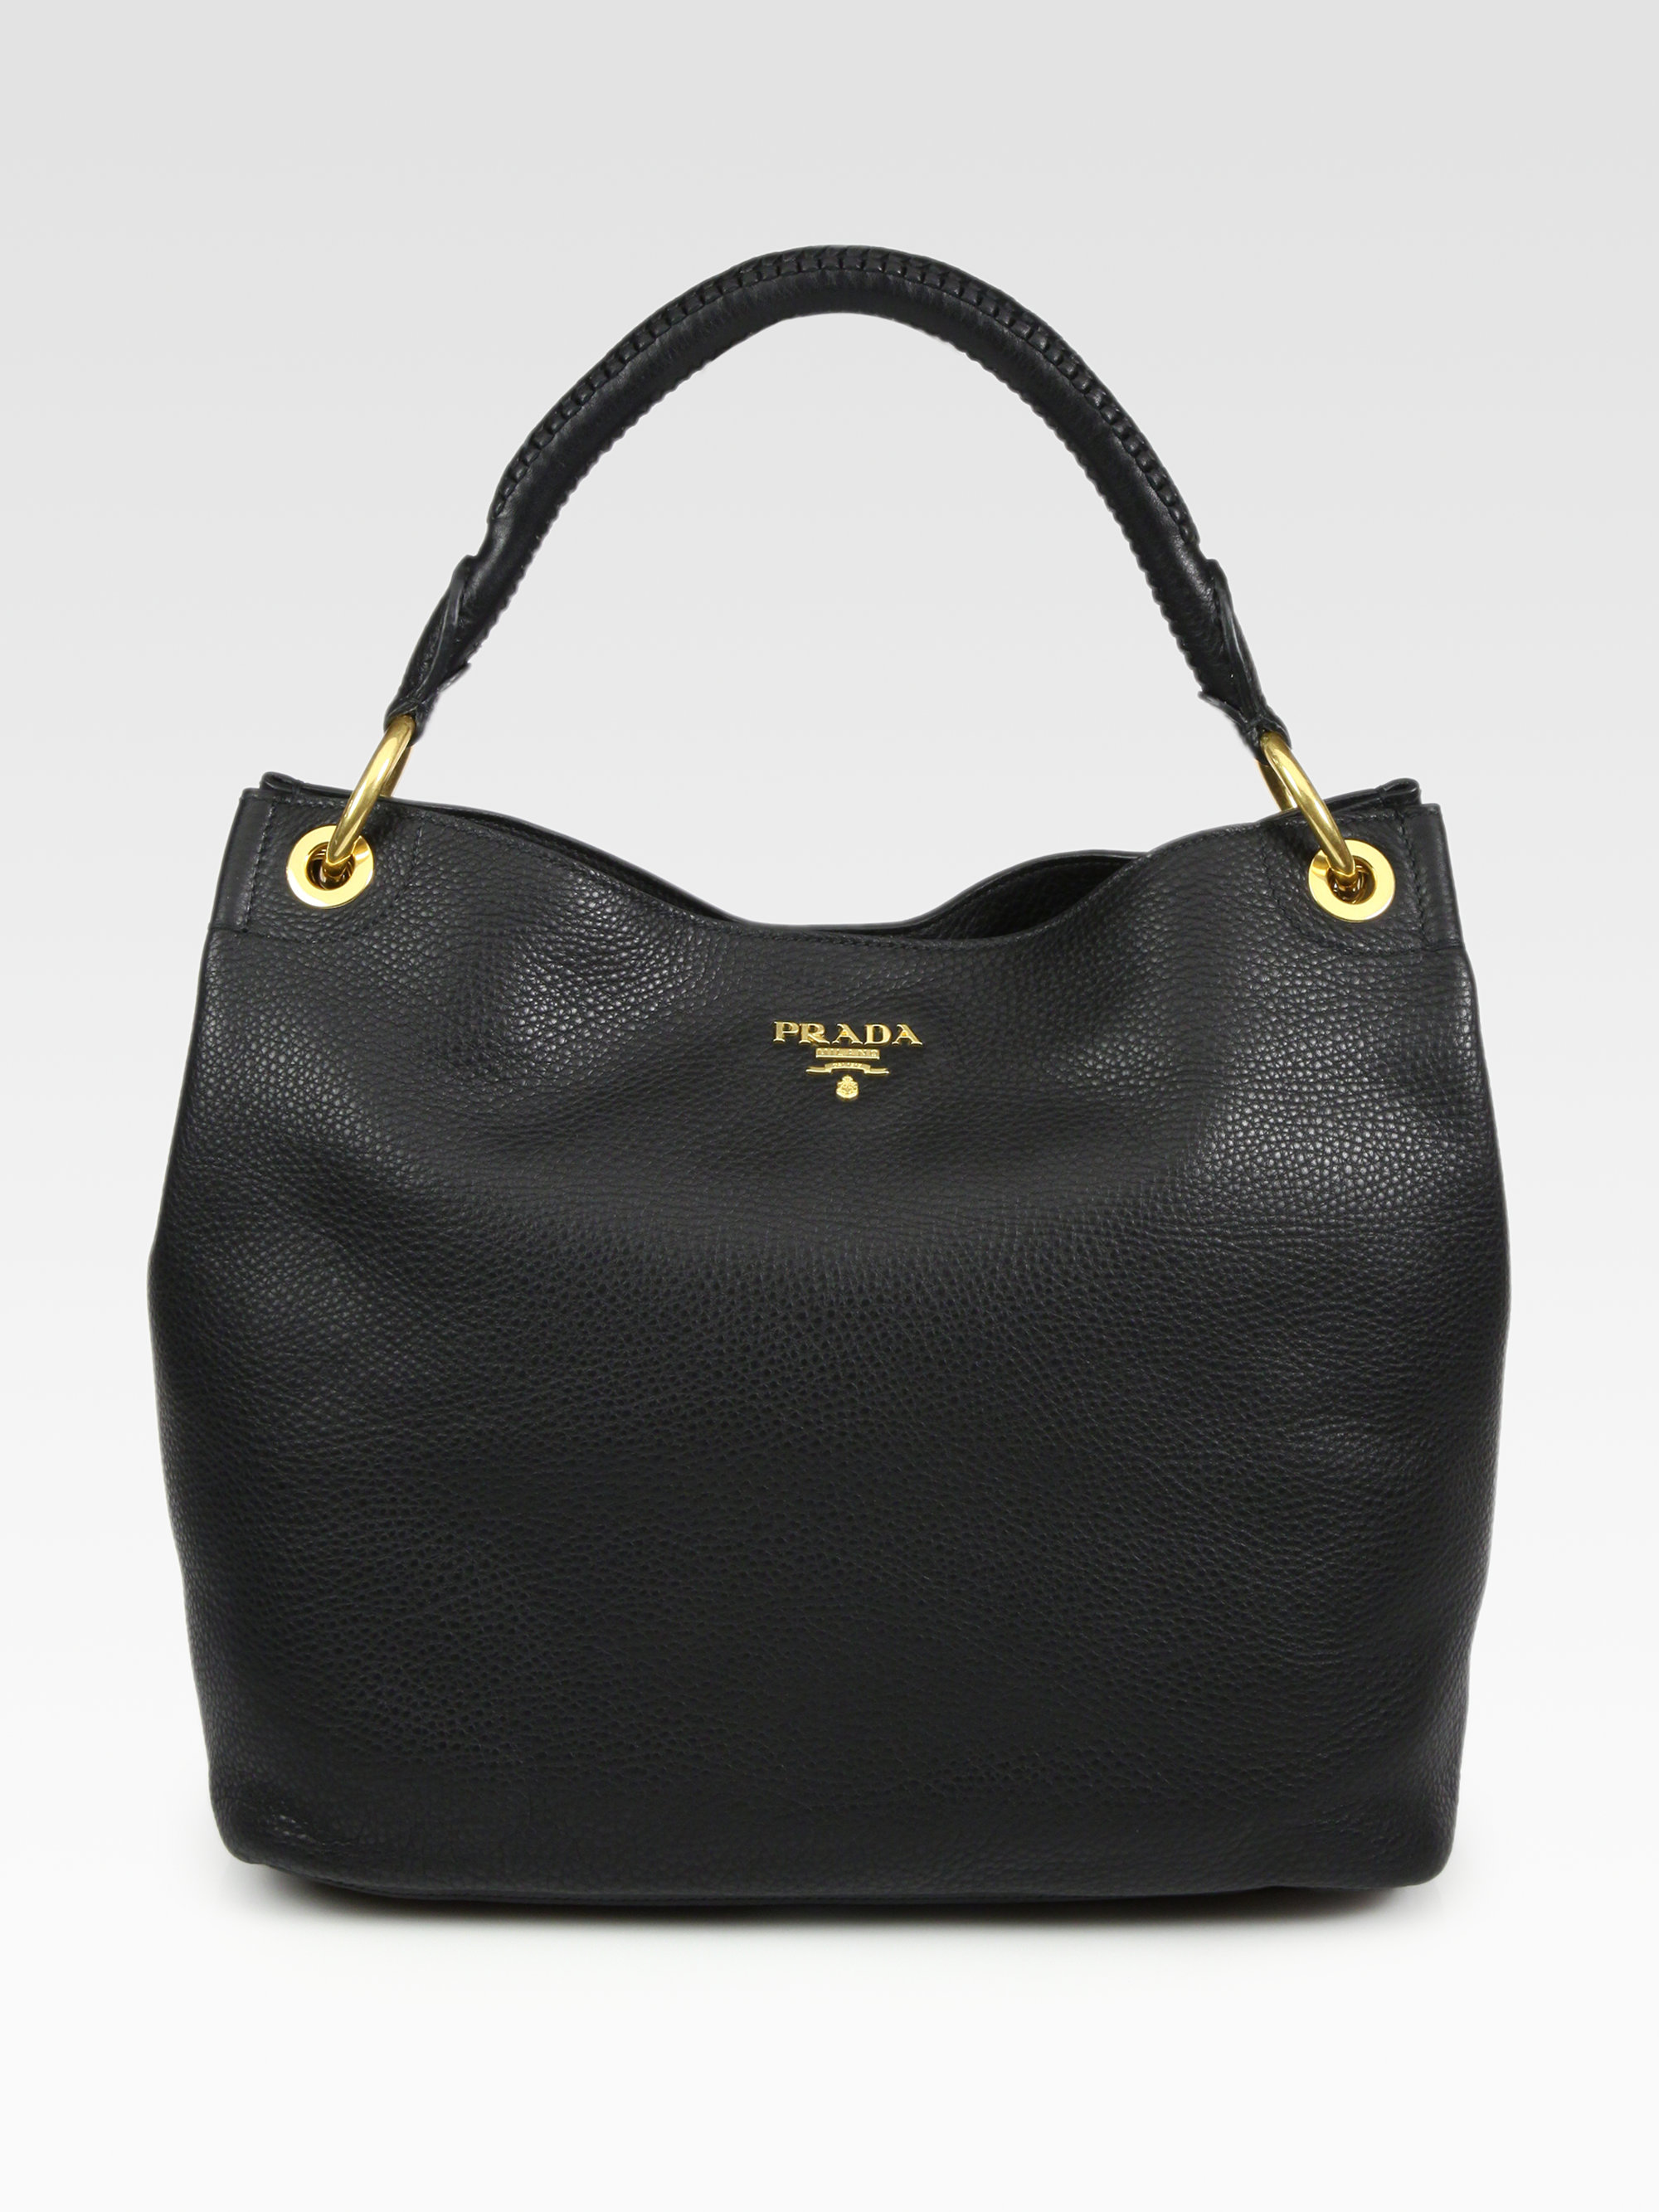 2e1f8f6955ab95 Prada Vitello Daino Hobo Bag in Black - Lyst